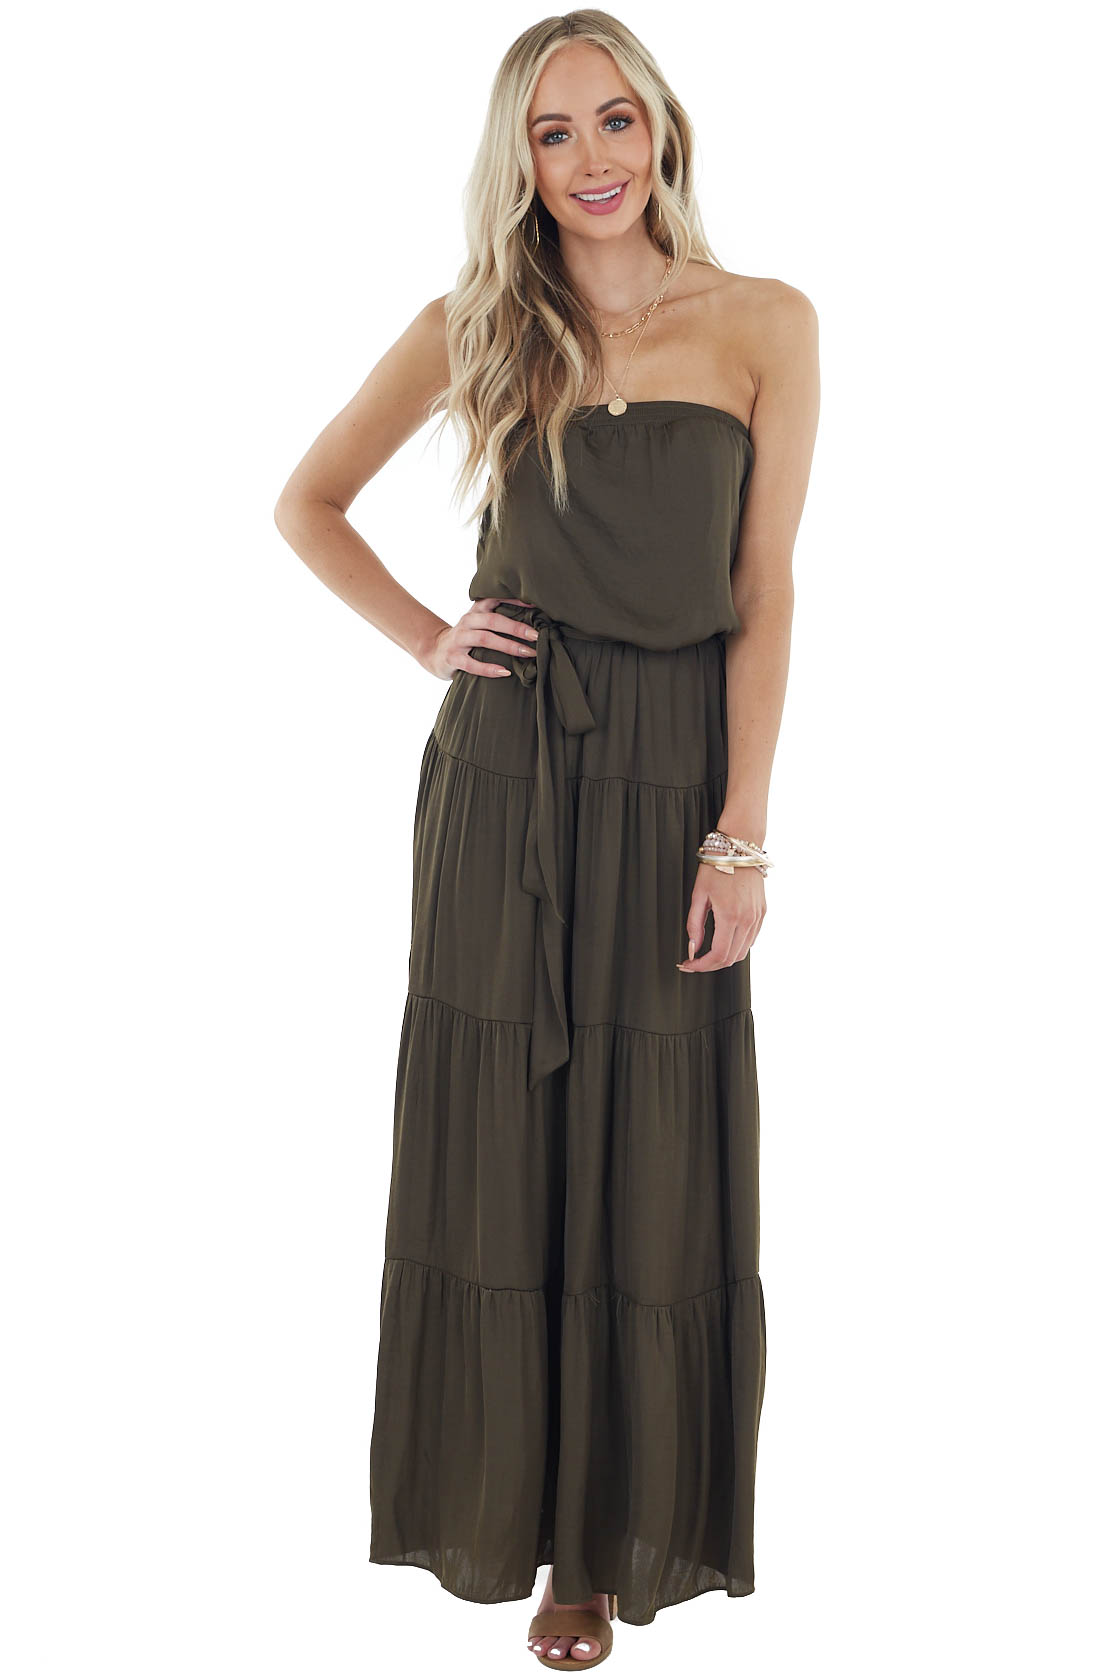 Dark Olive Tiered Tube Top Maxi Dress with Elastic Waist